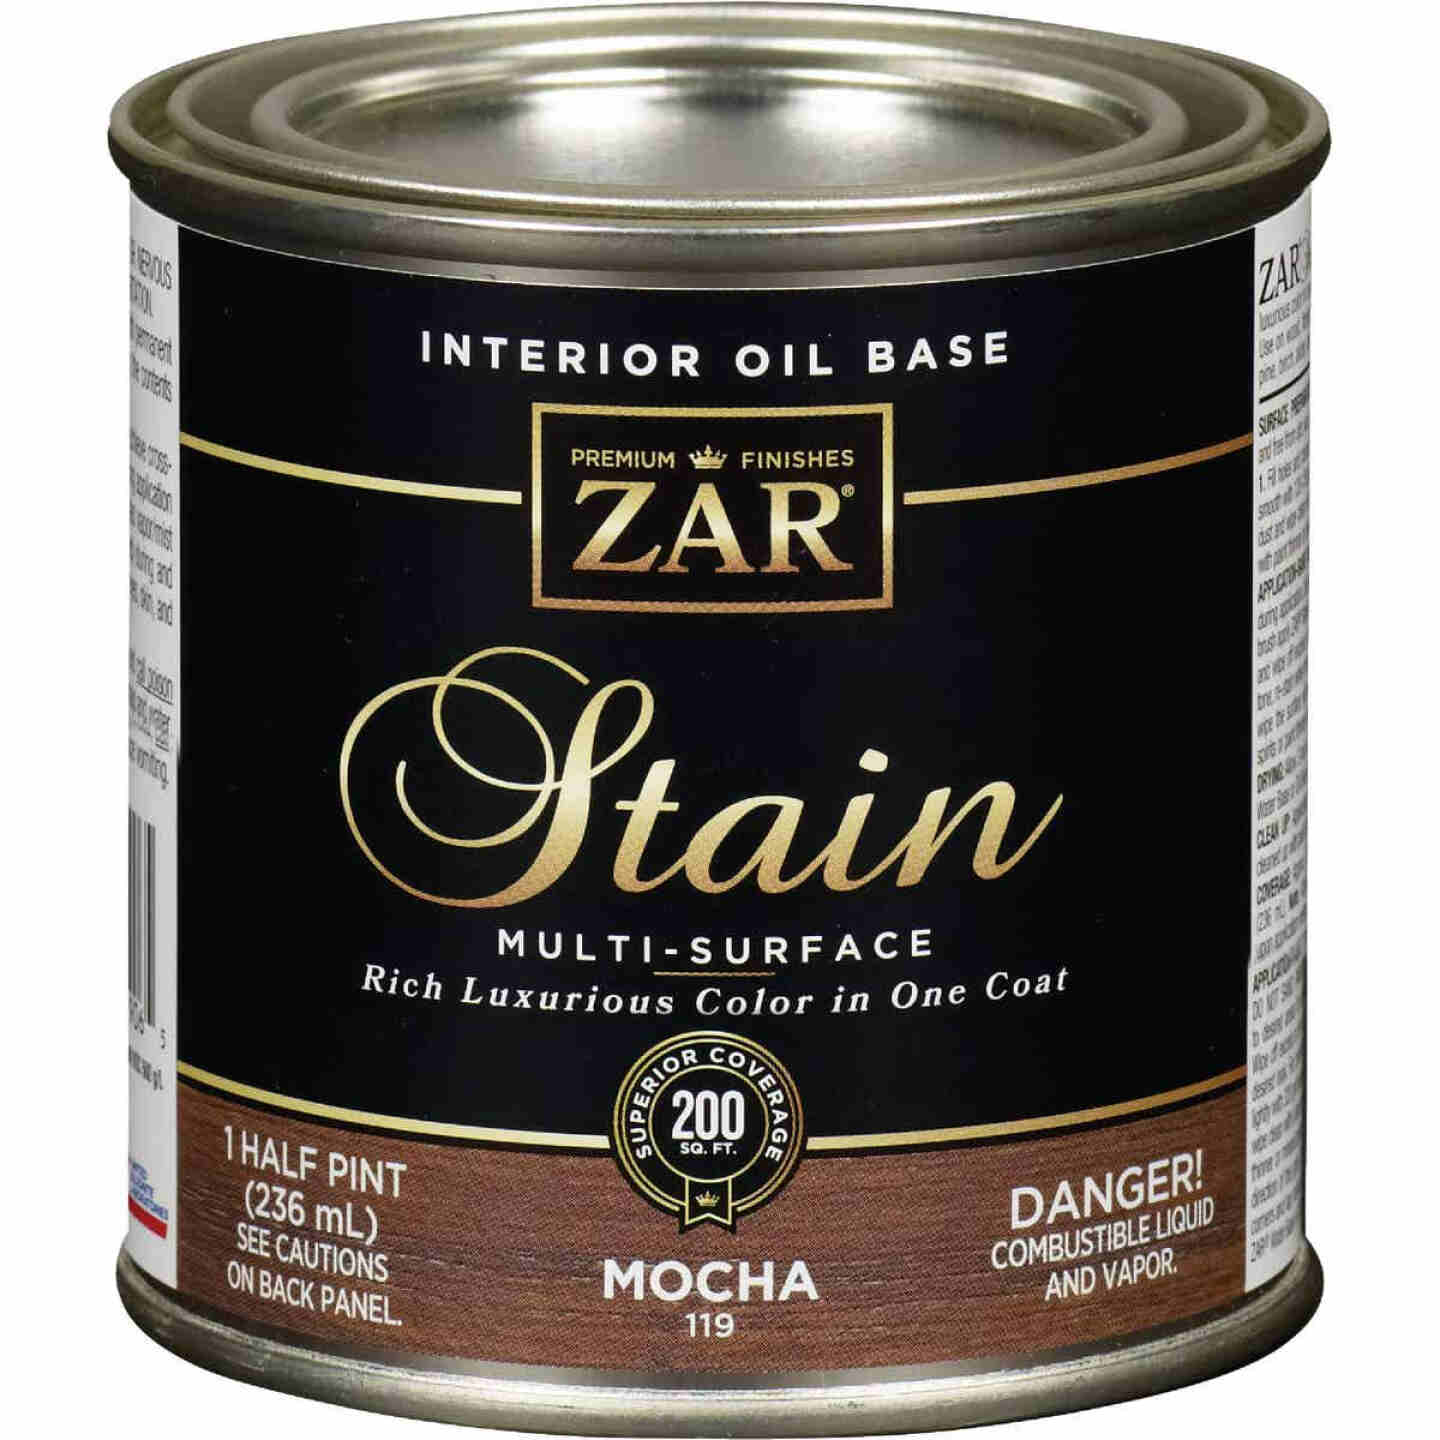 ZAR Oil-Based Wood Stain, Mocha, 1/2 Pt. Image 1